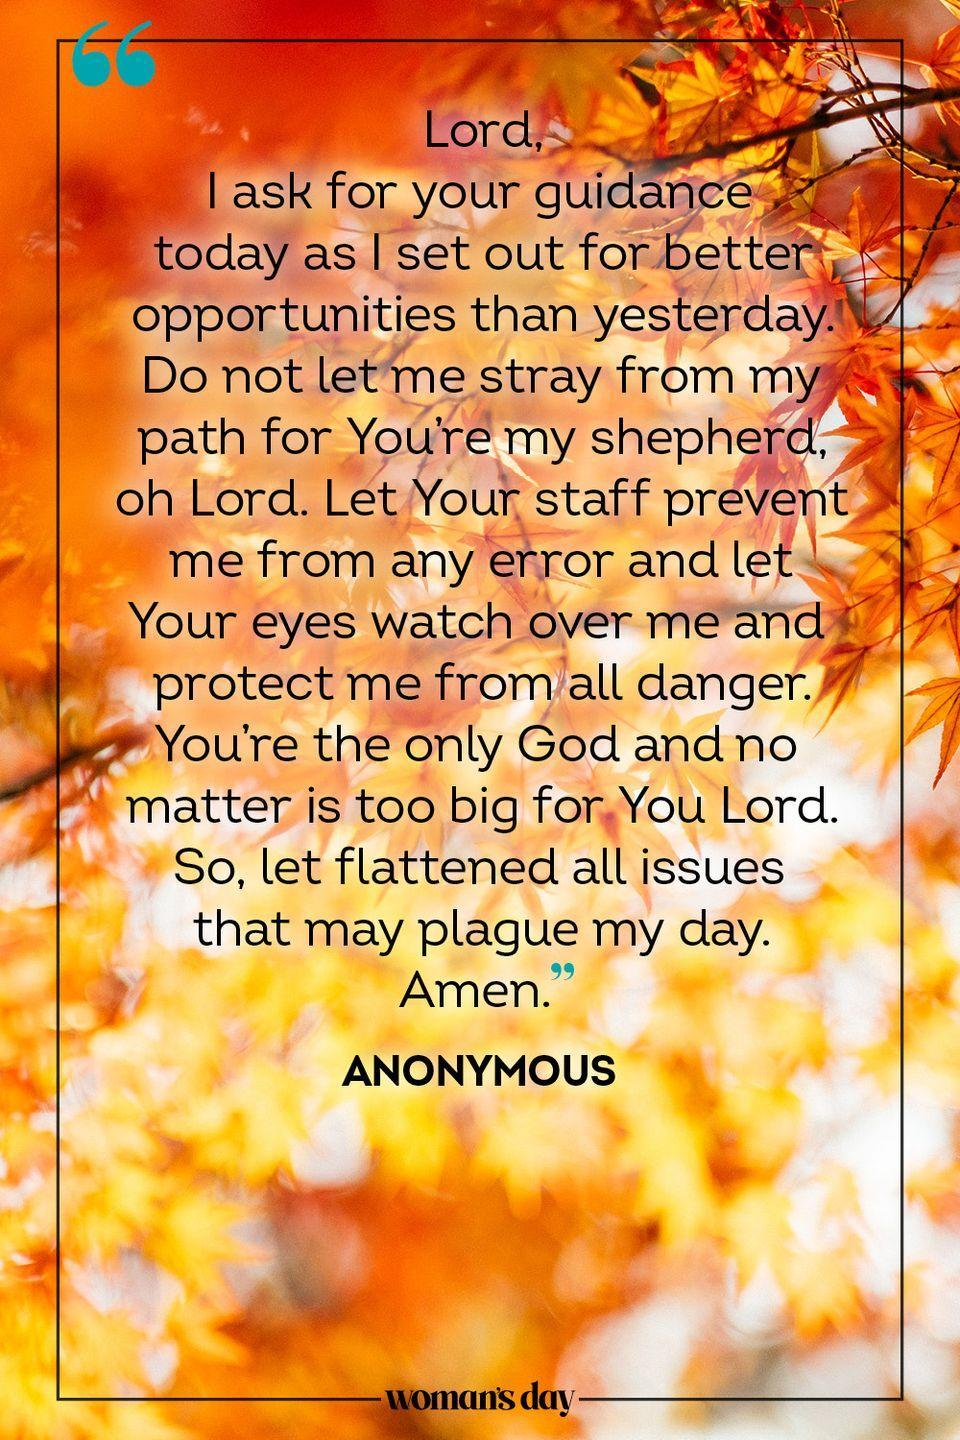 """<p>Lord, </p><p>I ask for your guidance today as I set out for better opportunities than yesterday. Do not let me stray from my path for You're my shepherd, oh Lord. Let Your staff prevent me from any error and let Your eyes watch over me and protect me from all danger. You're the only God and no matter is too big for You Lord. So, let flattened all issues that may plague my day. </p><p>Amen.</p><p>— <a href=""""https://www.holylandprayer.com/prayer_for/powerful-prayers-for-today/"""" rel=""""nofollow noopener"""" target=""""_blank"""" data-ylk=""""slk:Anonymous"""" class=""""link rapid-noclick-resp"""">Anonymous</a></p>"""